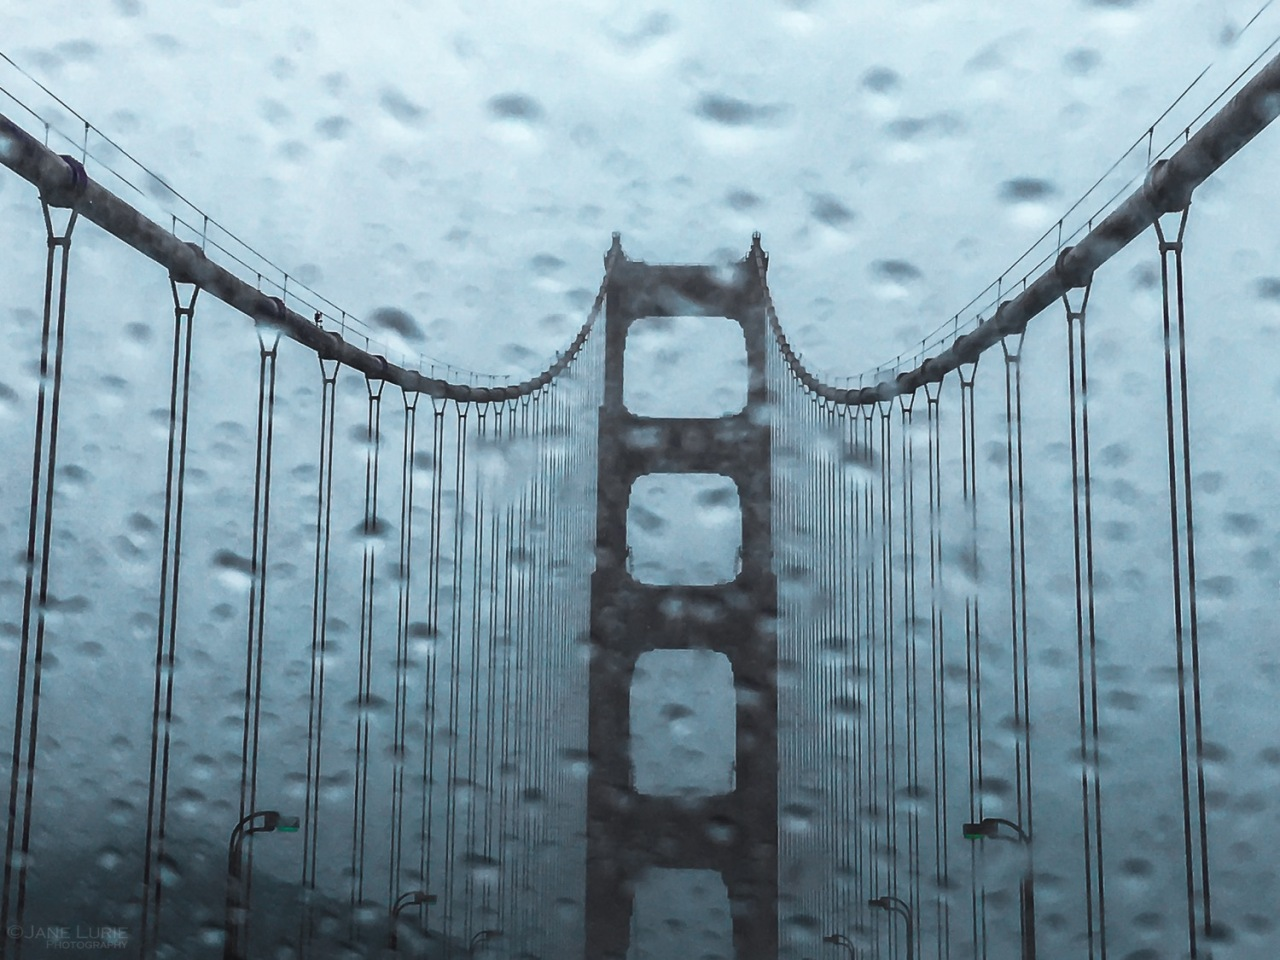 Golden Gate, San Francisco, Rain, Photography